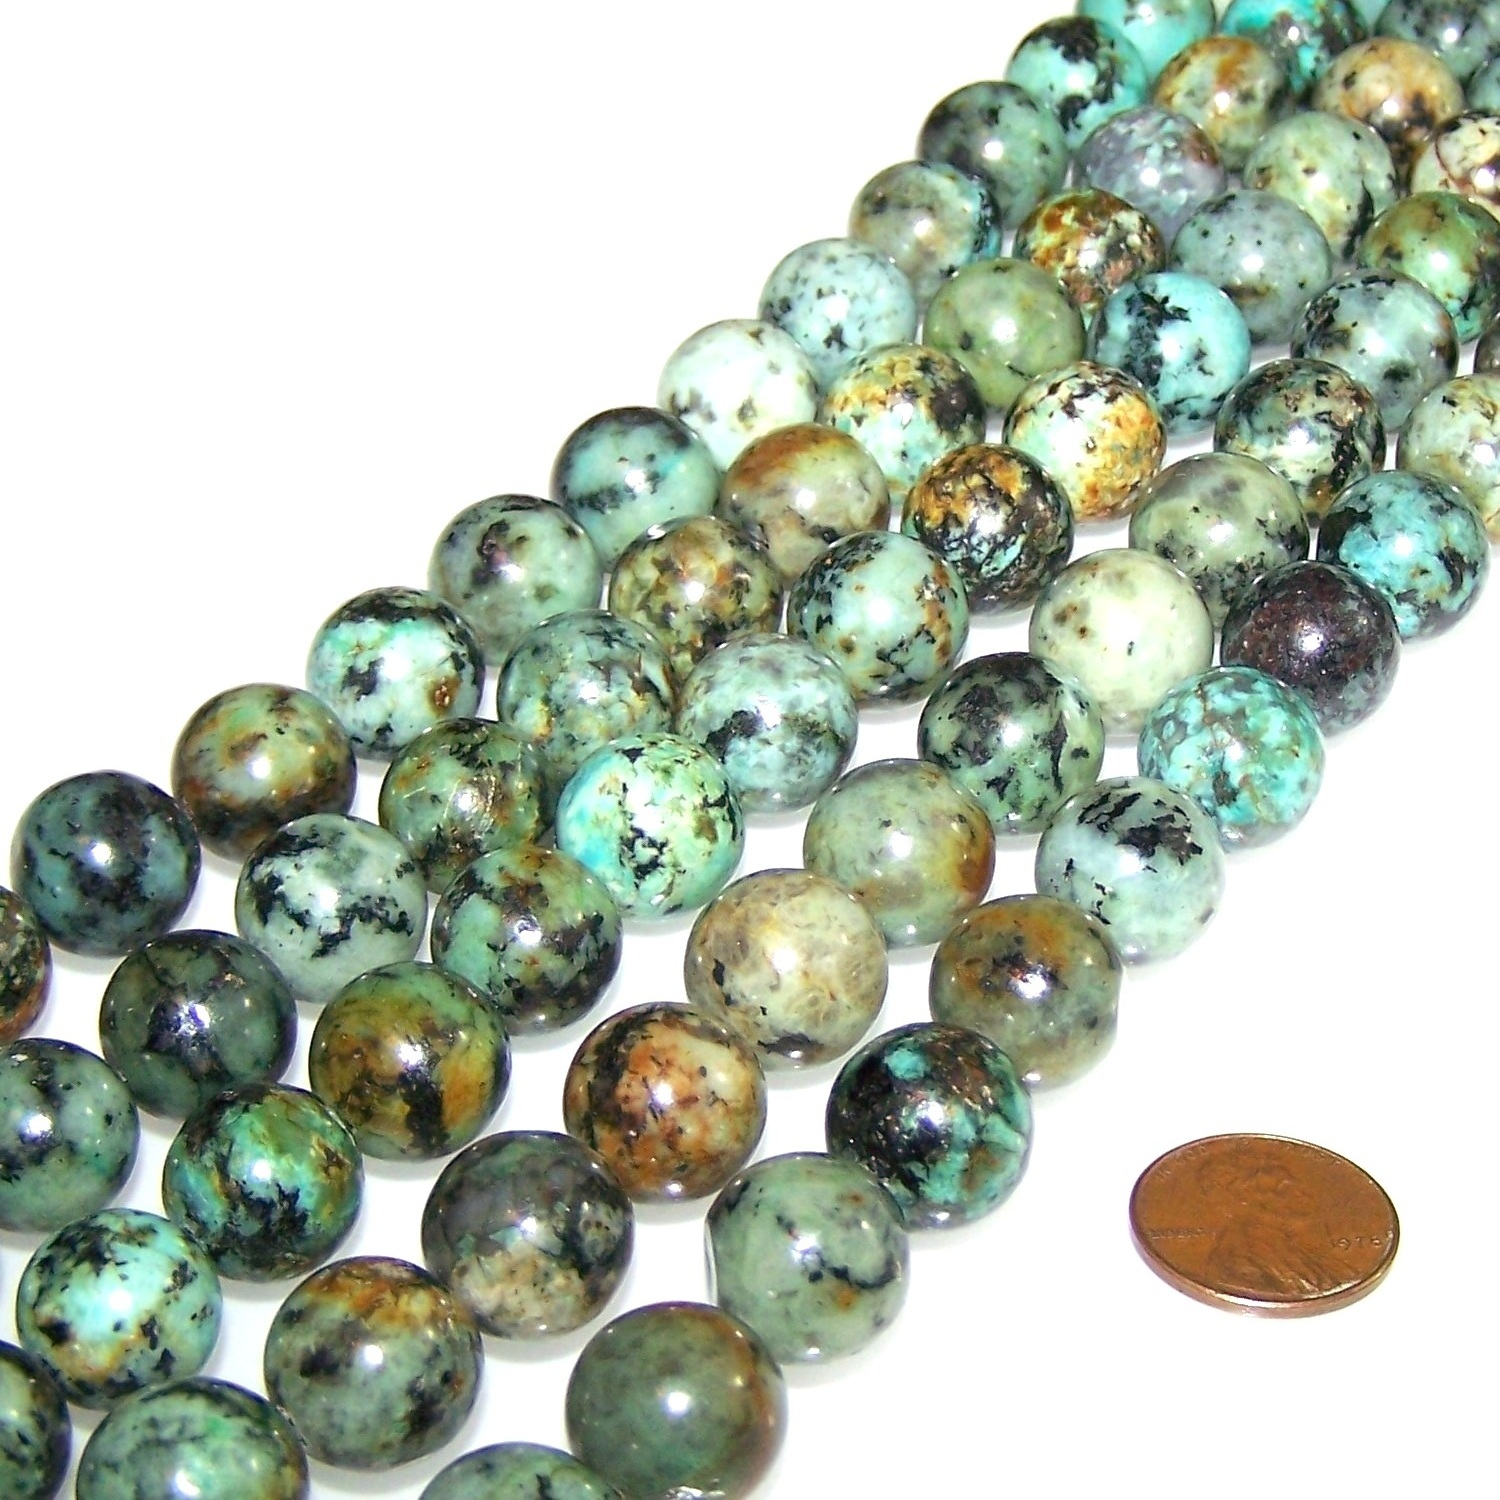 Gemstone Beads - Rounds - 12mm